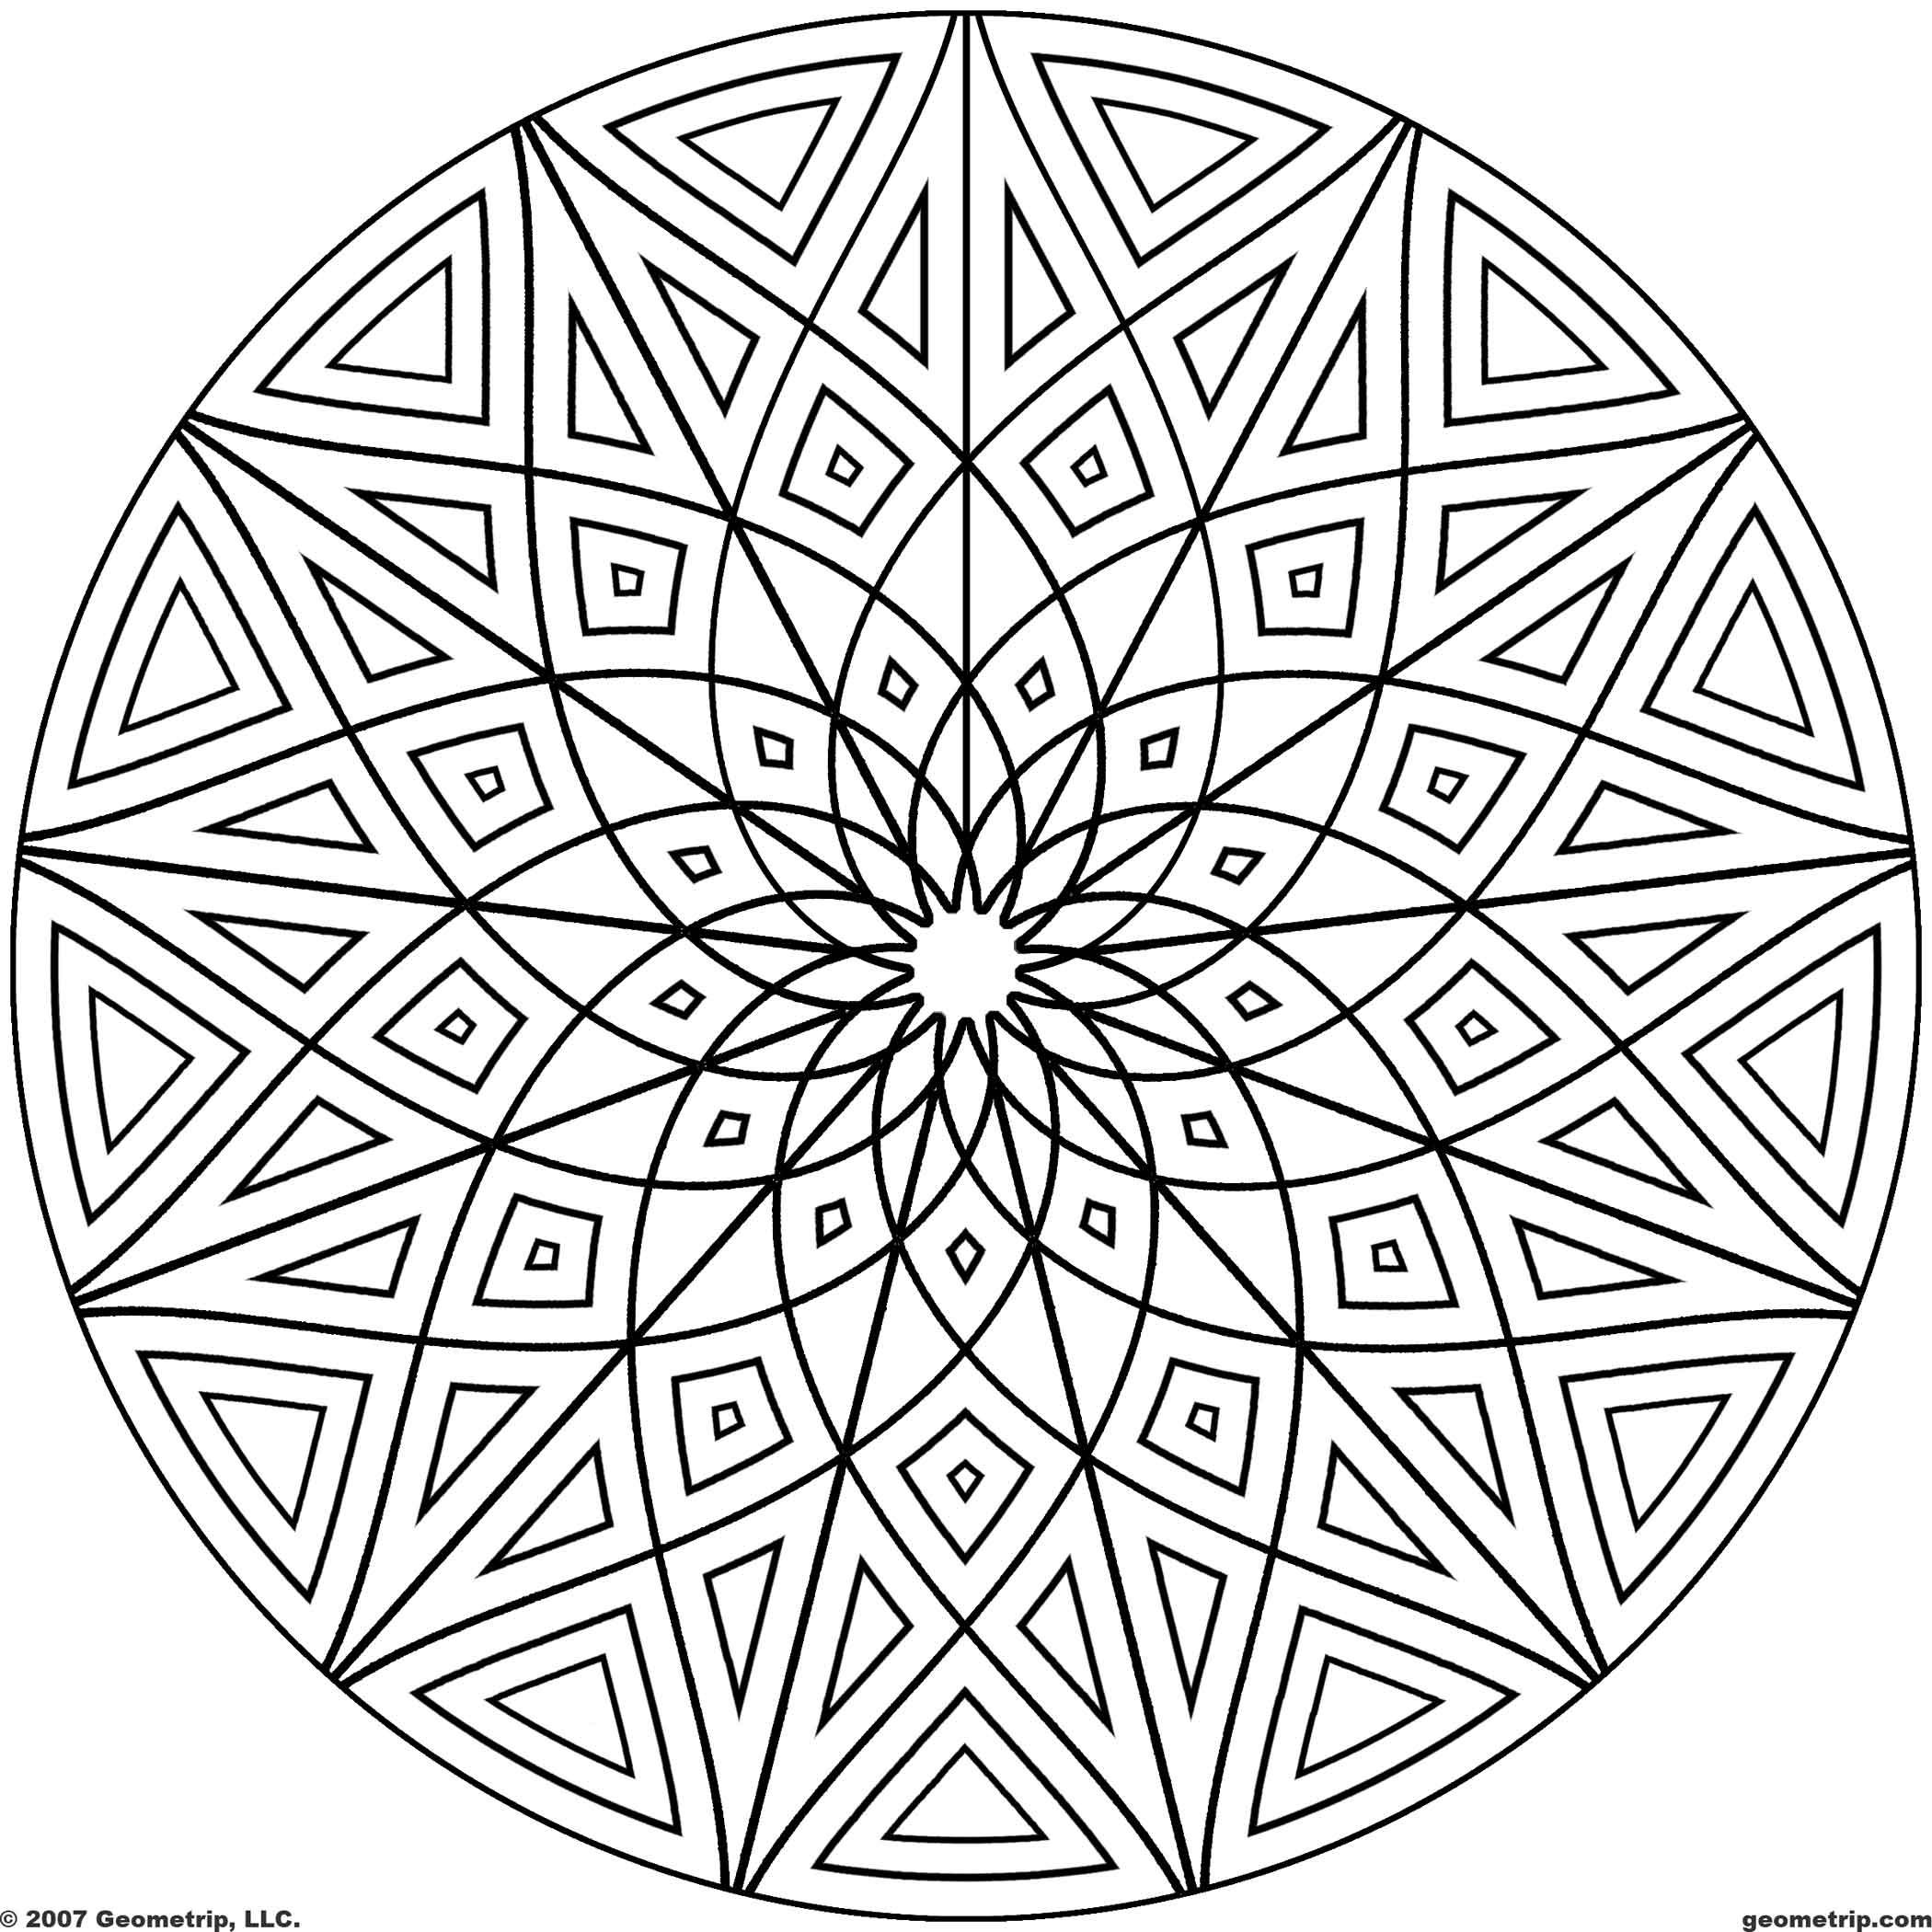 cool designs to color in coloring pages of cool designs coloring home color designs in cool to